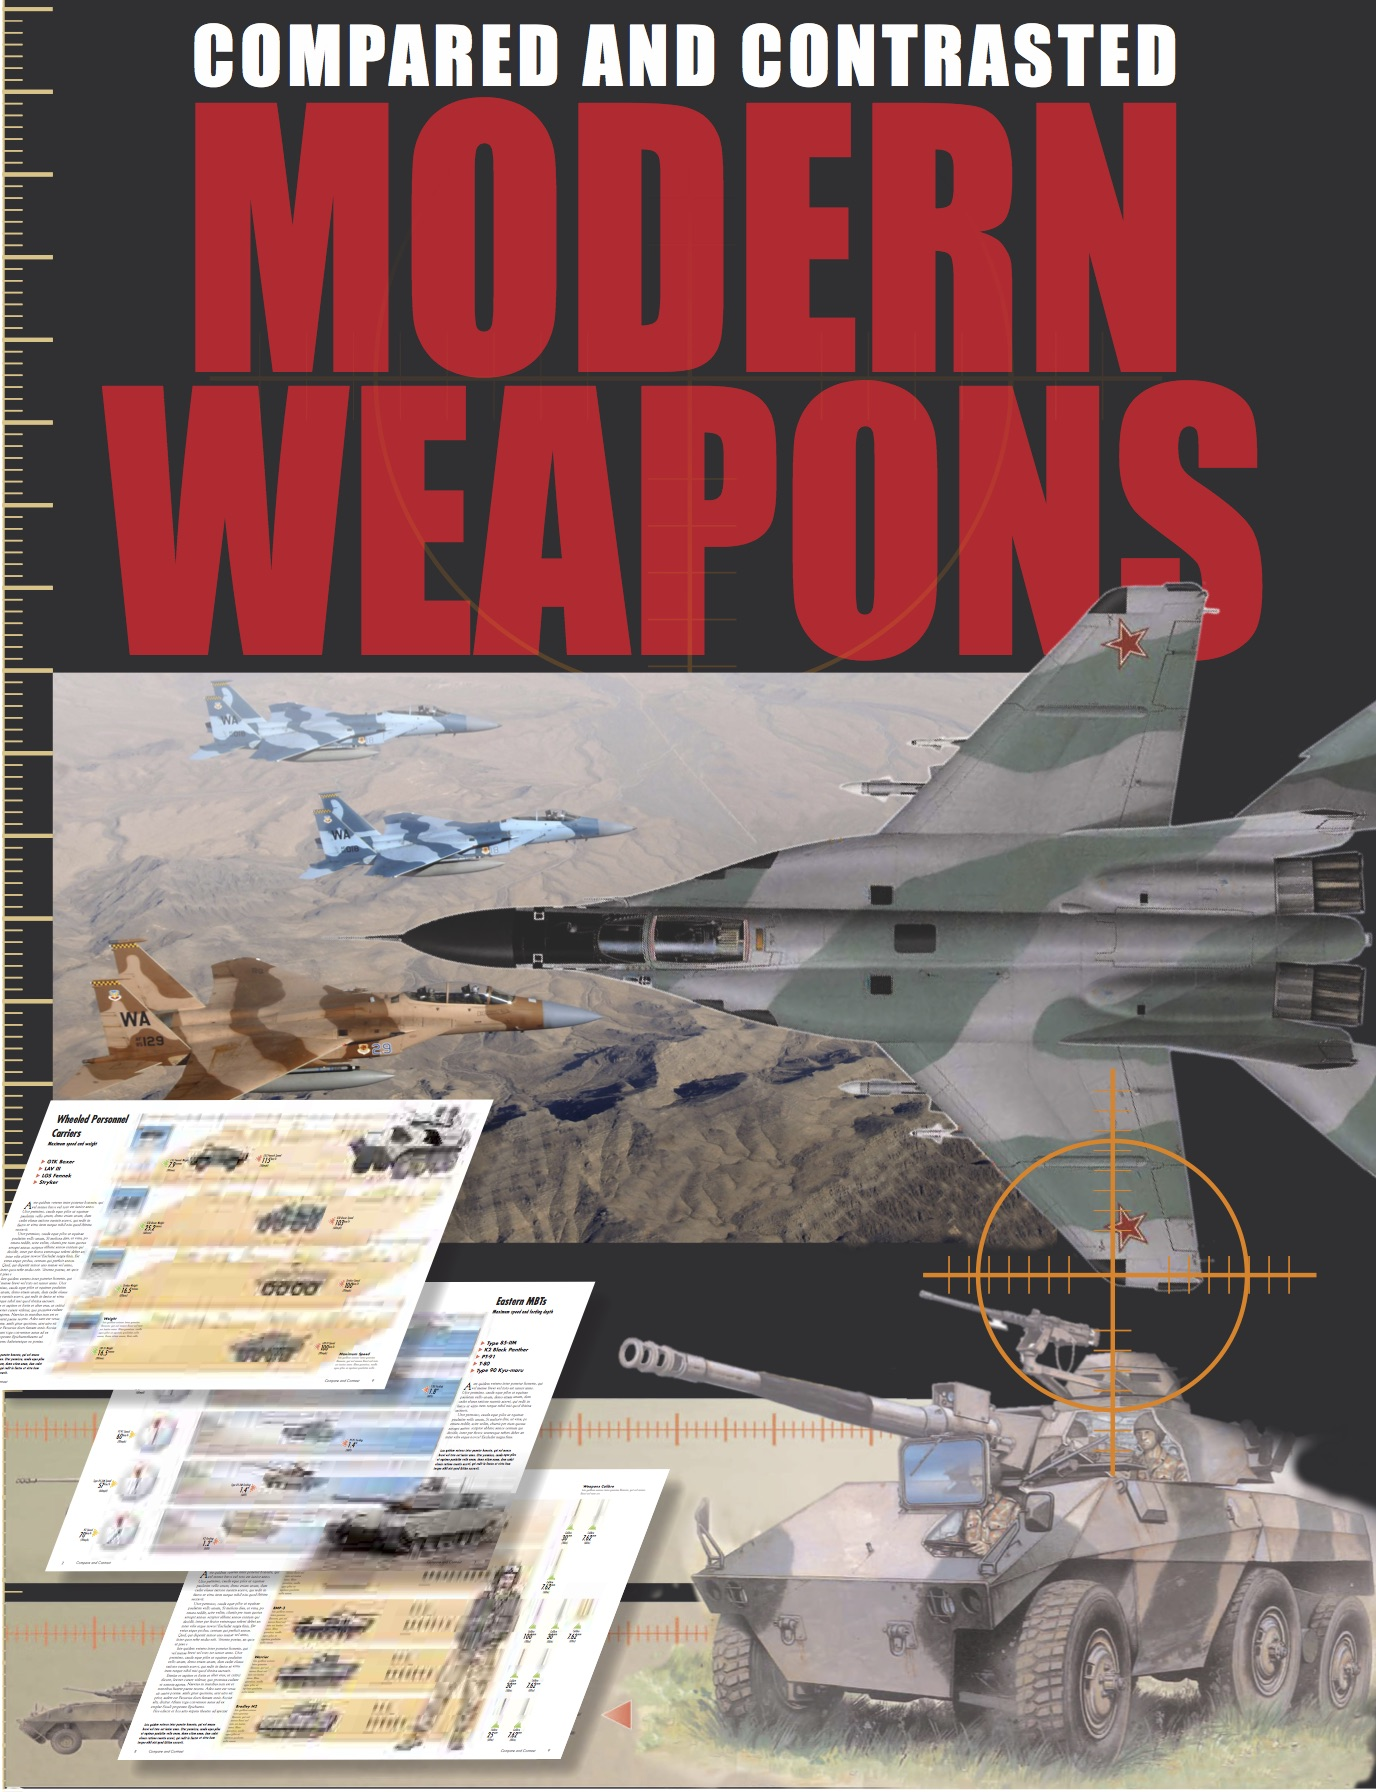 Modern Weapons: Compared and Contrasted